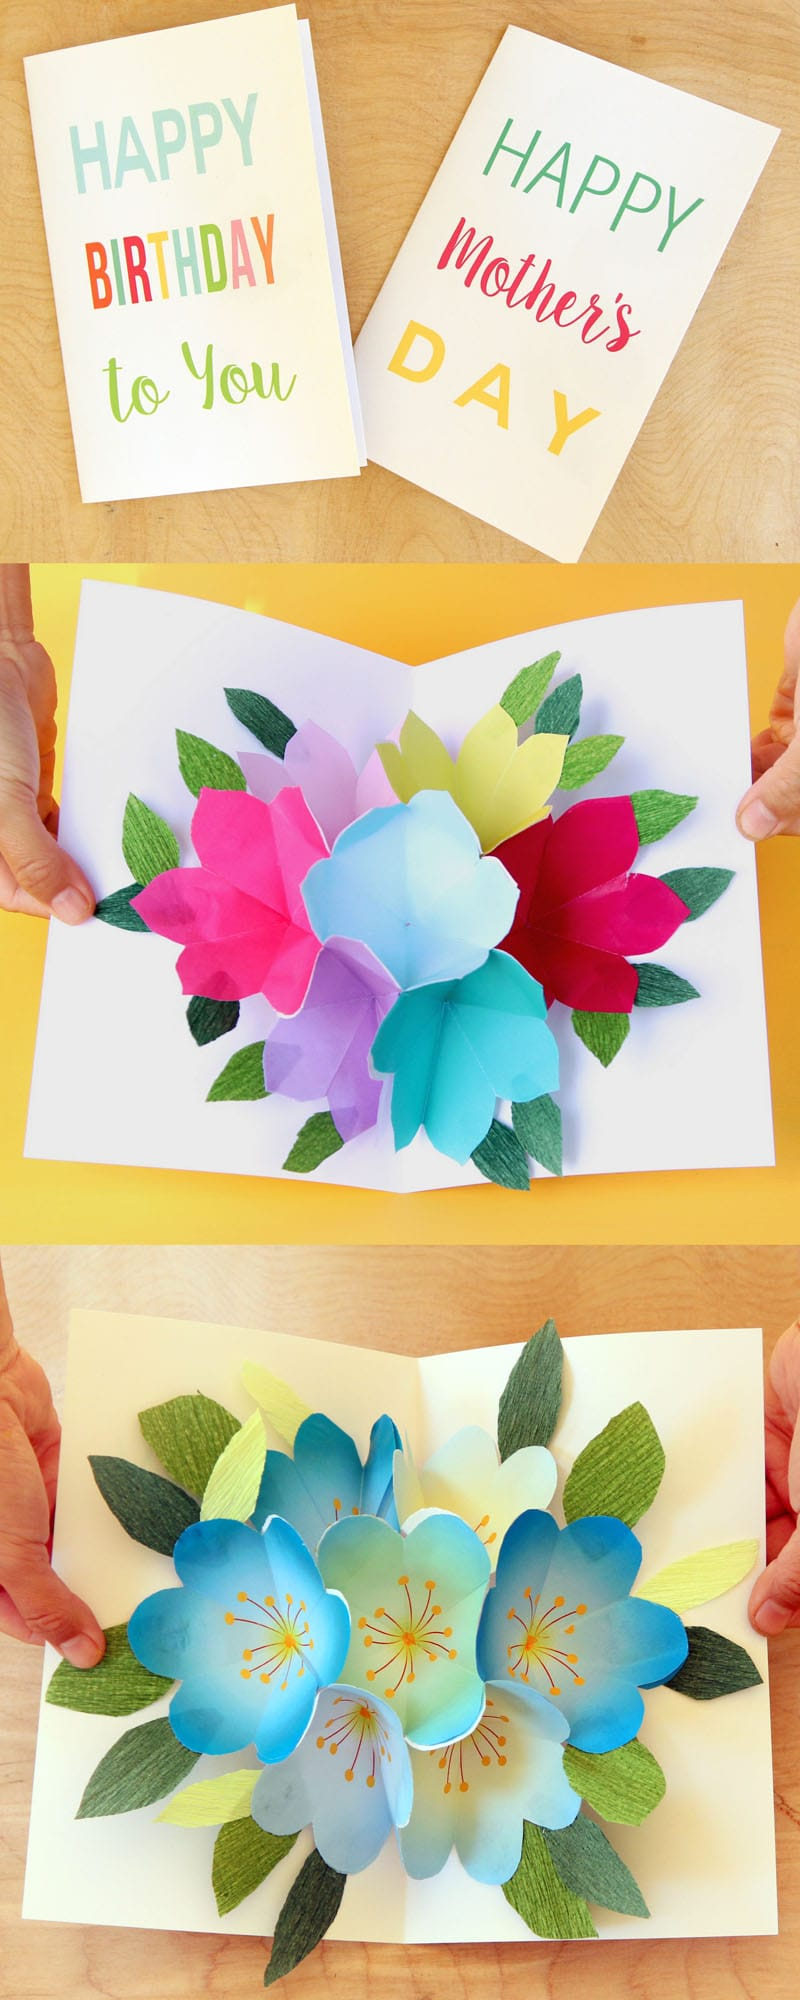 Free printable happy birthday card with pop up bouquet a piece you can make this easy and free printable birthday card in less than an hour oh and the best part a big bouquet pops right out when your loved one opens bookmarktalkfo Image collections